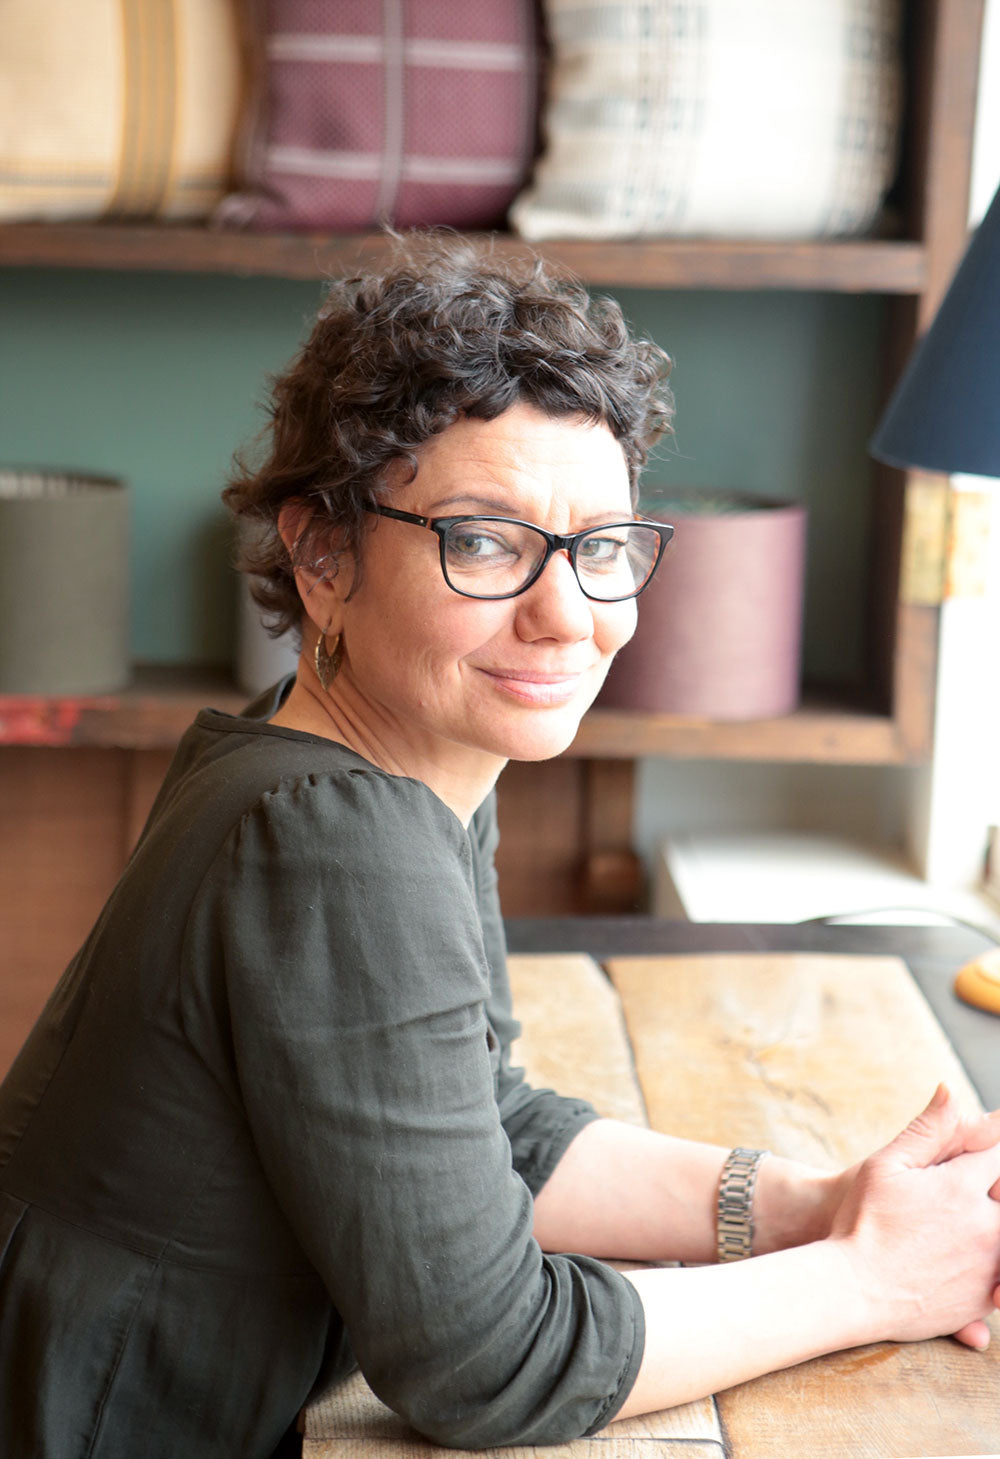 Debbie from Tala Home and Living started her journey as a curator and retailer doing pop up shops and markets in Goa and the UK, collecting her favourite fabrics and pieces as she travelled around the world.